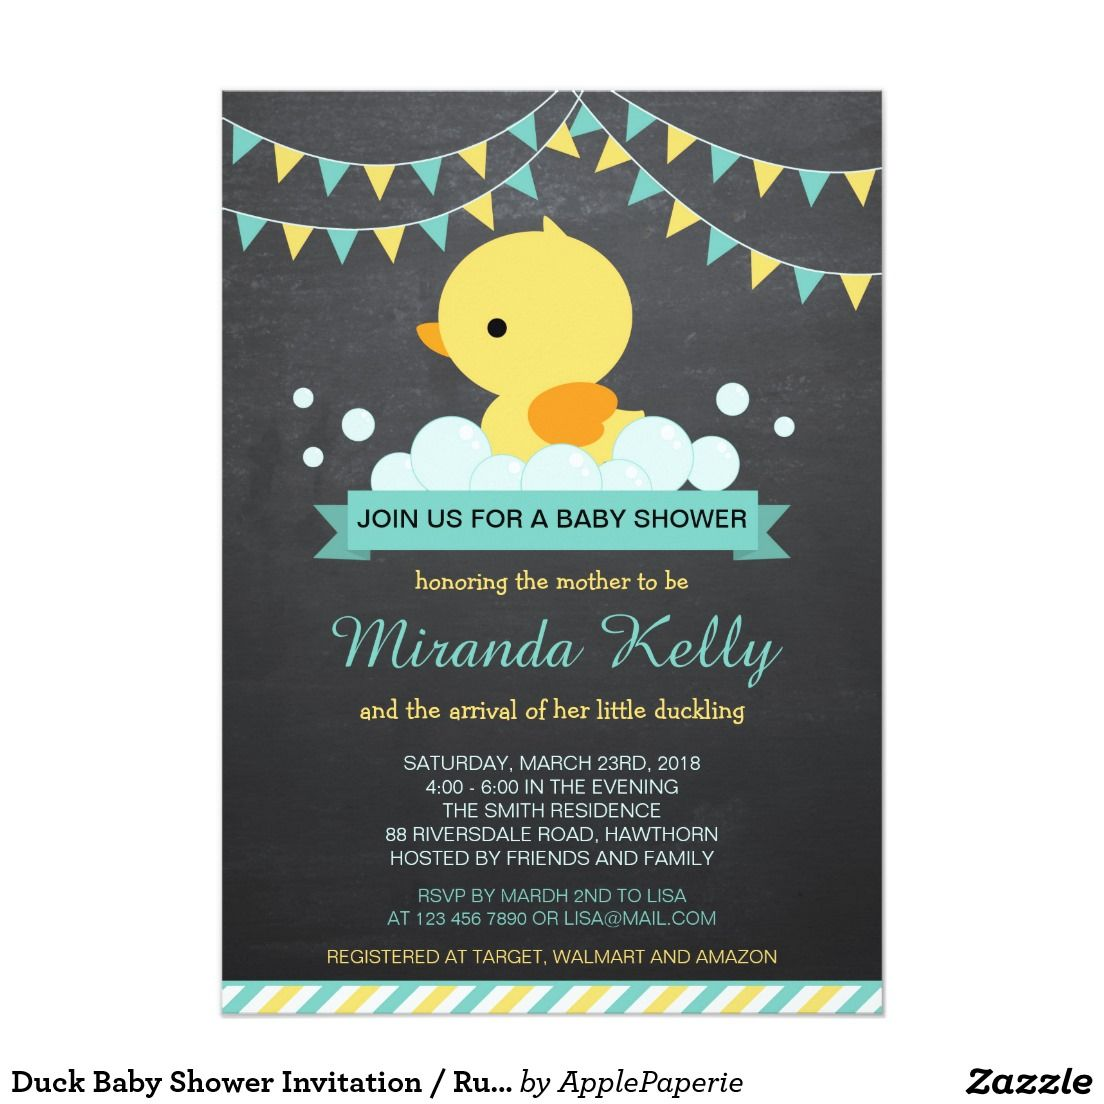 Duck Baby Shower Invitation / Rubber Duck Invite | Duck baby showers ...